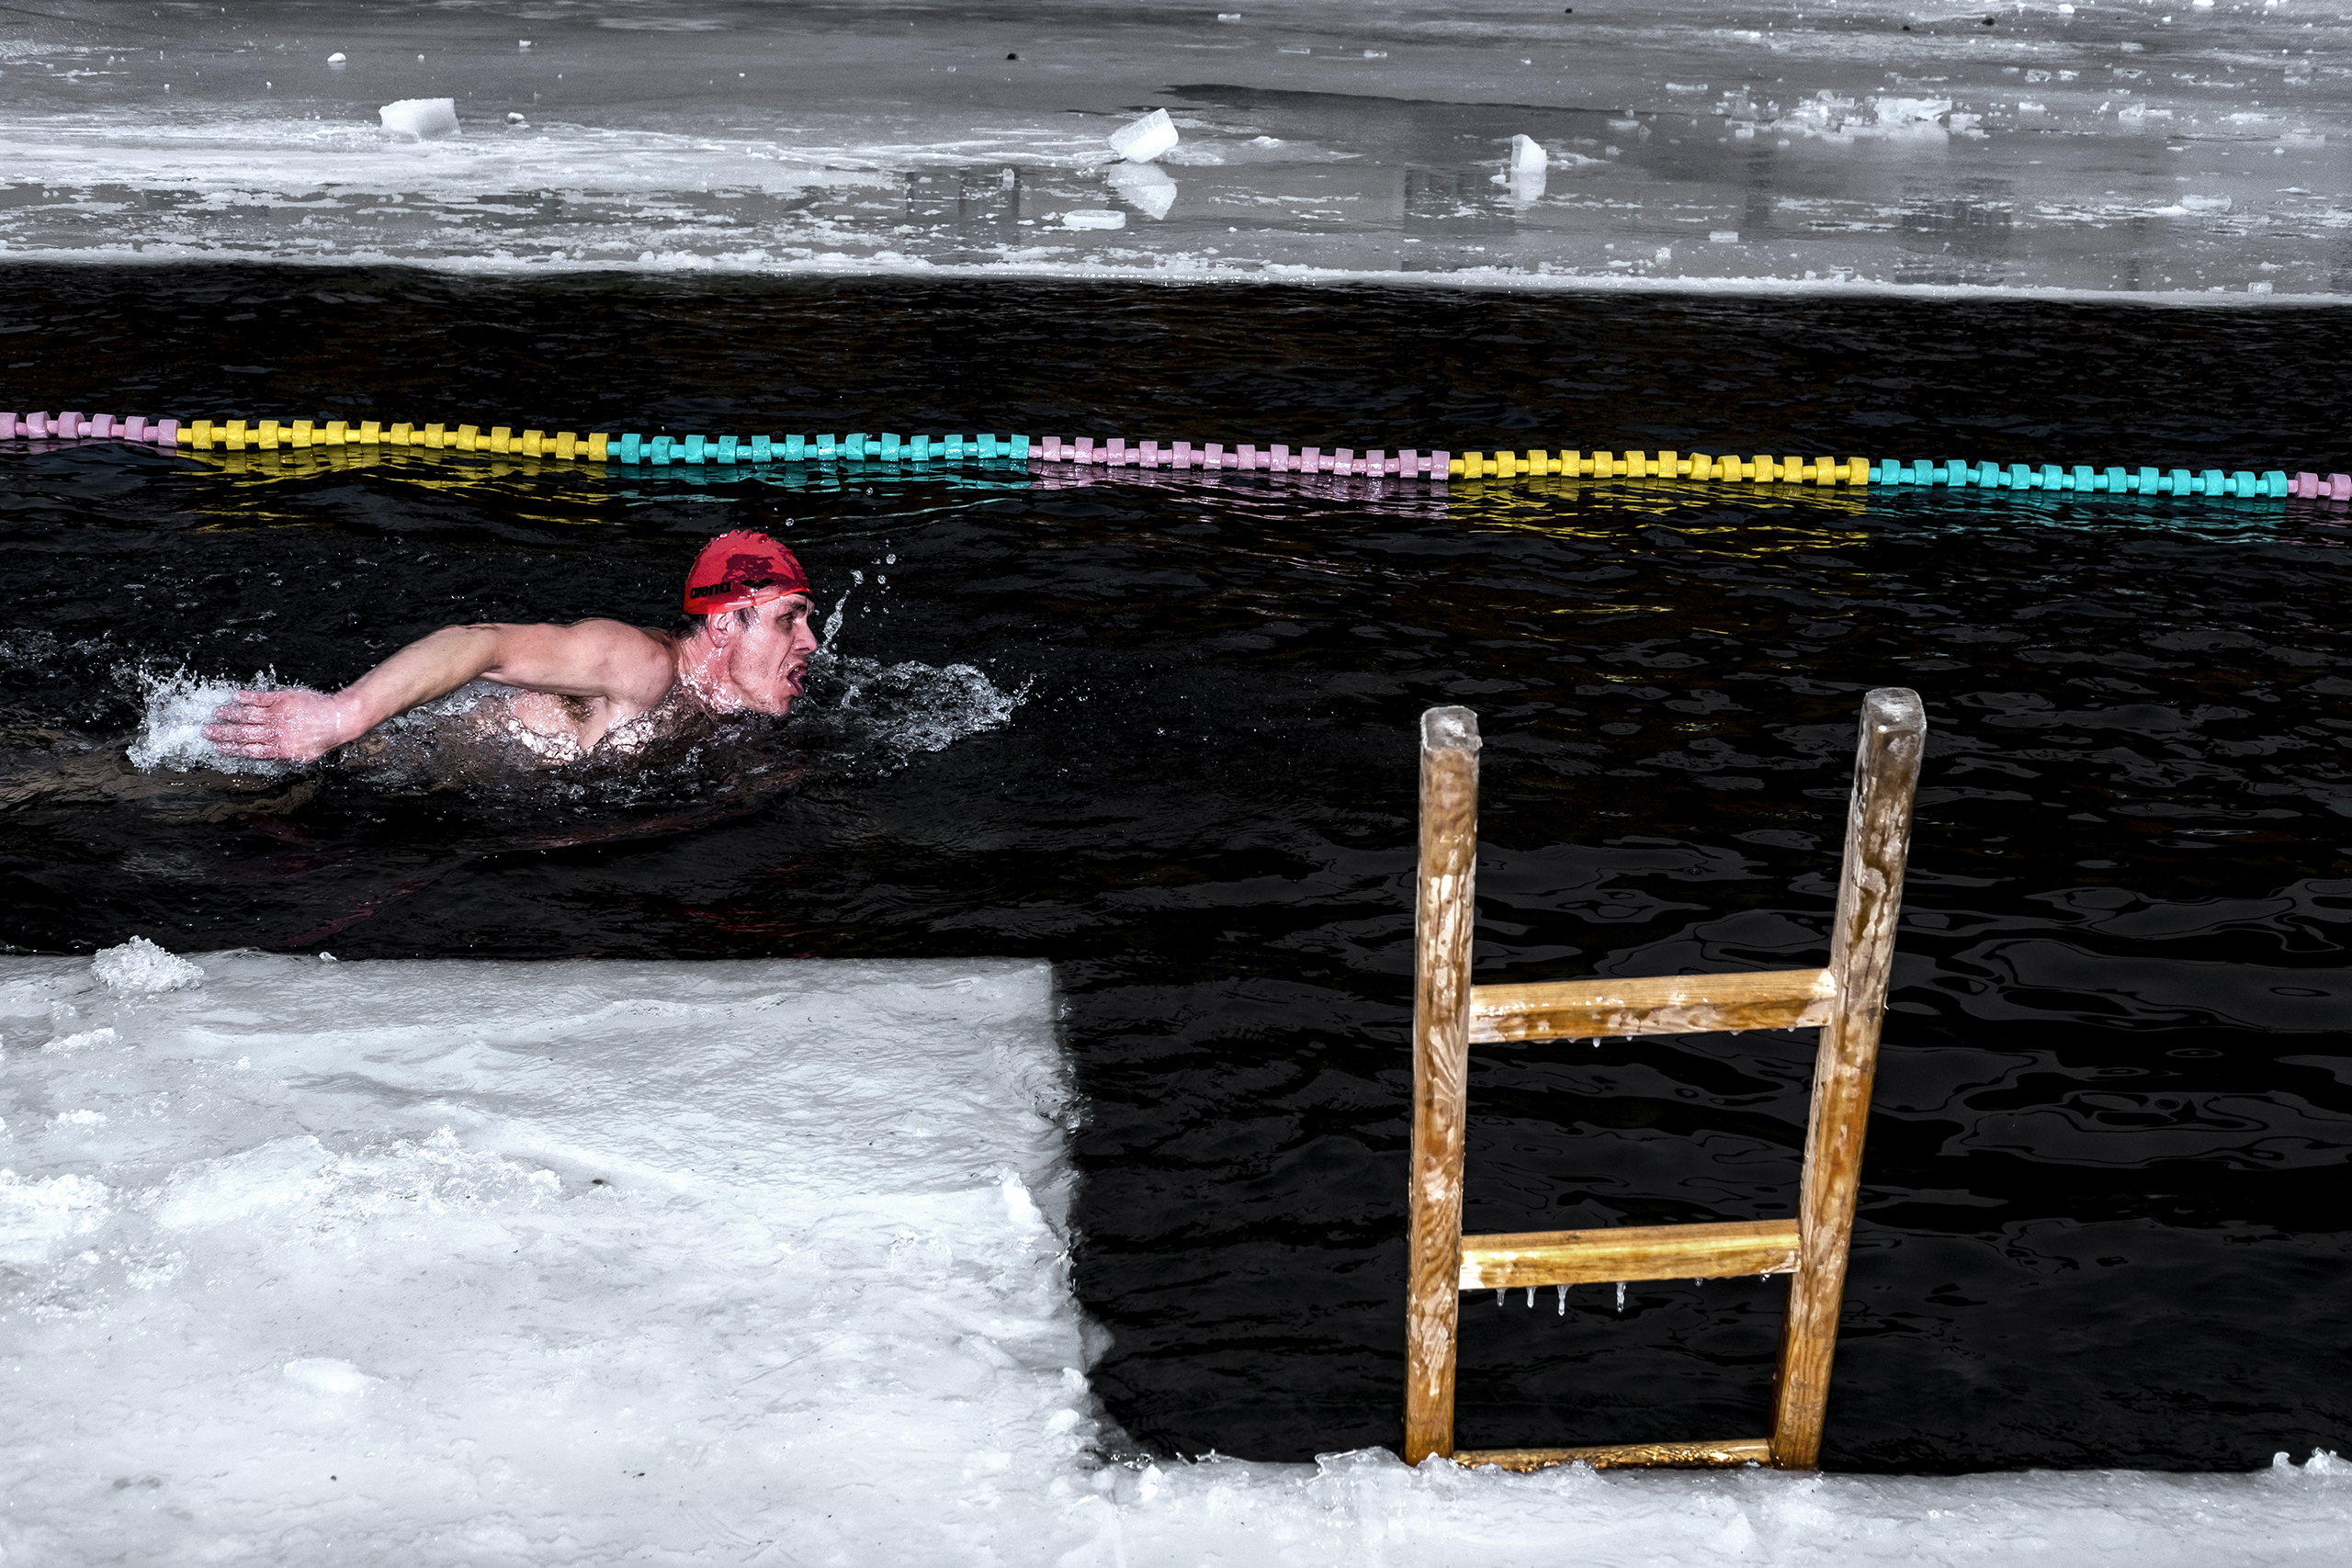 A cold water swimmer in the Orlice River, in the Czech Republic, on Jan. 28 2017.